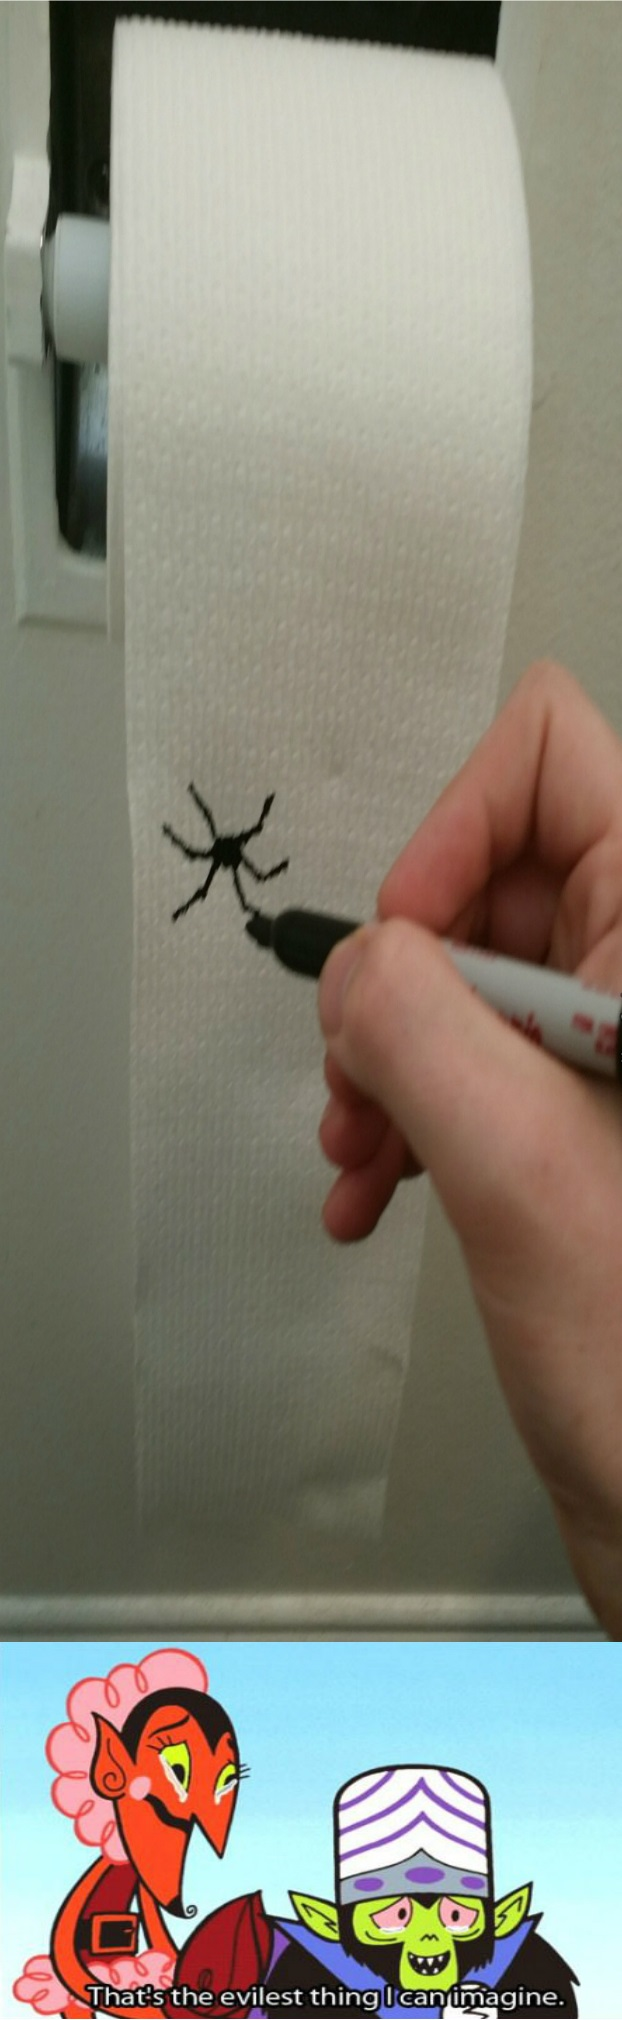 funny-picture-toilet-paper-troll-spider